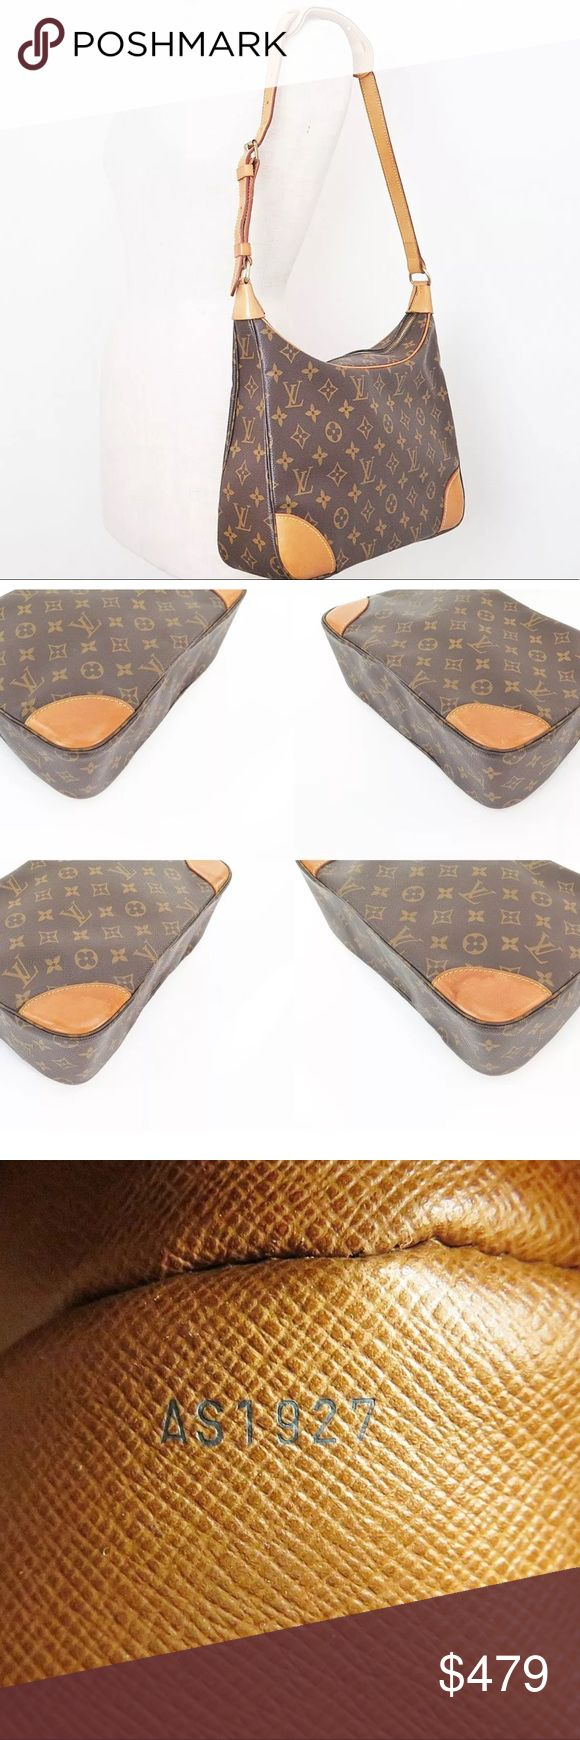 """Authentic Louis Vuitton Boulogne 30 This bag is in excellent condition on the outside. No rubbing on corners, but slight water marks on two of the four. Strap is in great condition. Adjustable from 29"""" to 40"""". Inside is good with the exception of the zippered pocket which has wear and flaking. Not sticky. Any questions, please ask. Overall, a wonderful bag. Louis Vuitton Bags Shoulder Bags"""